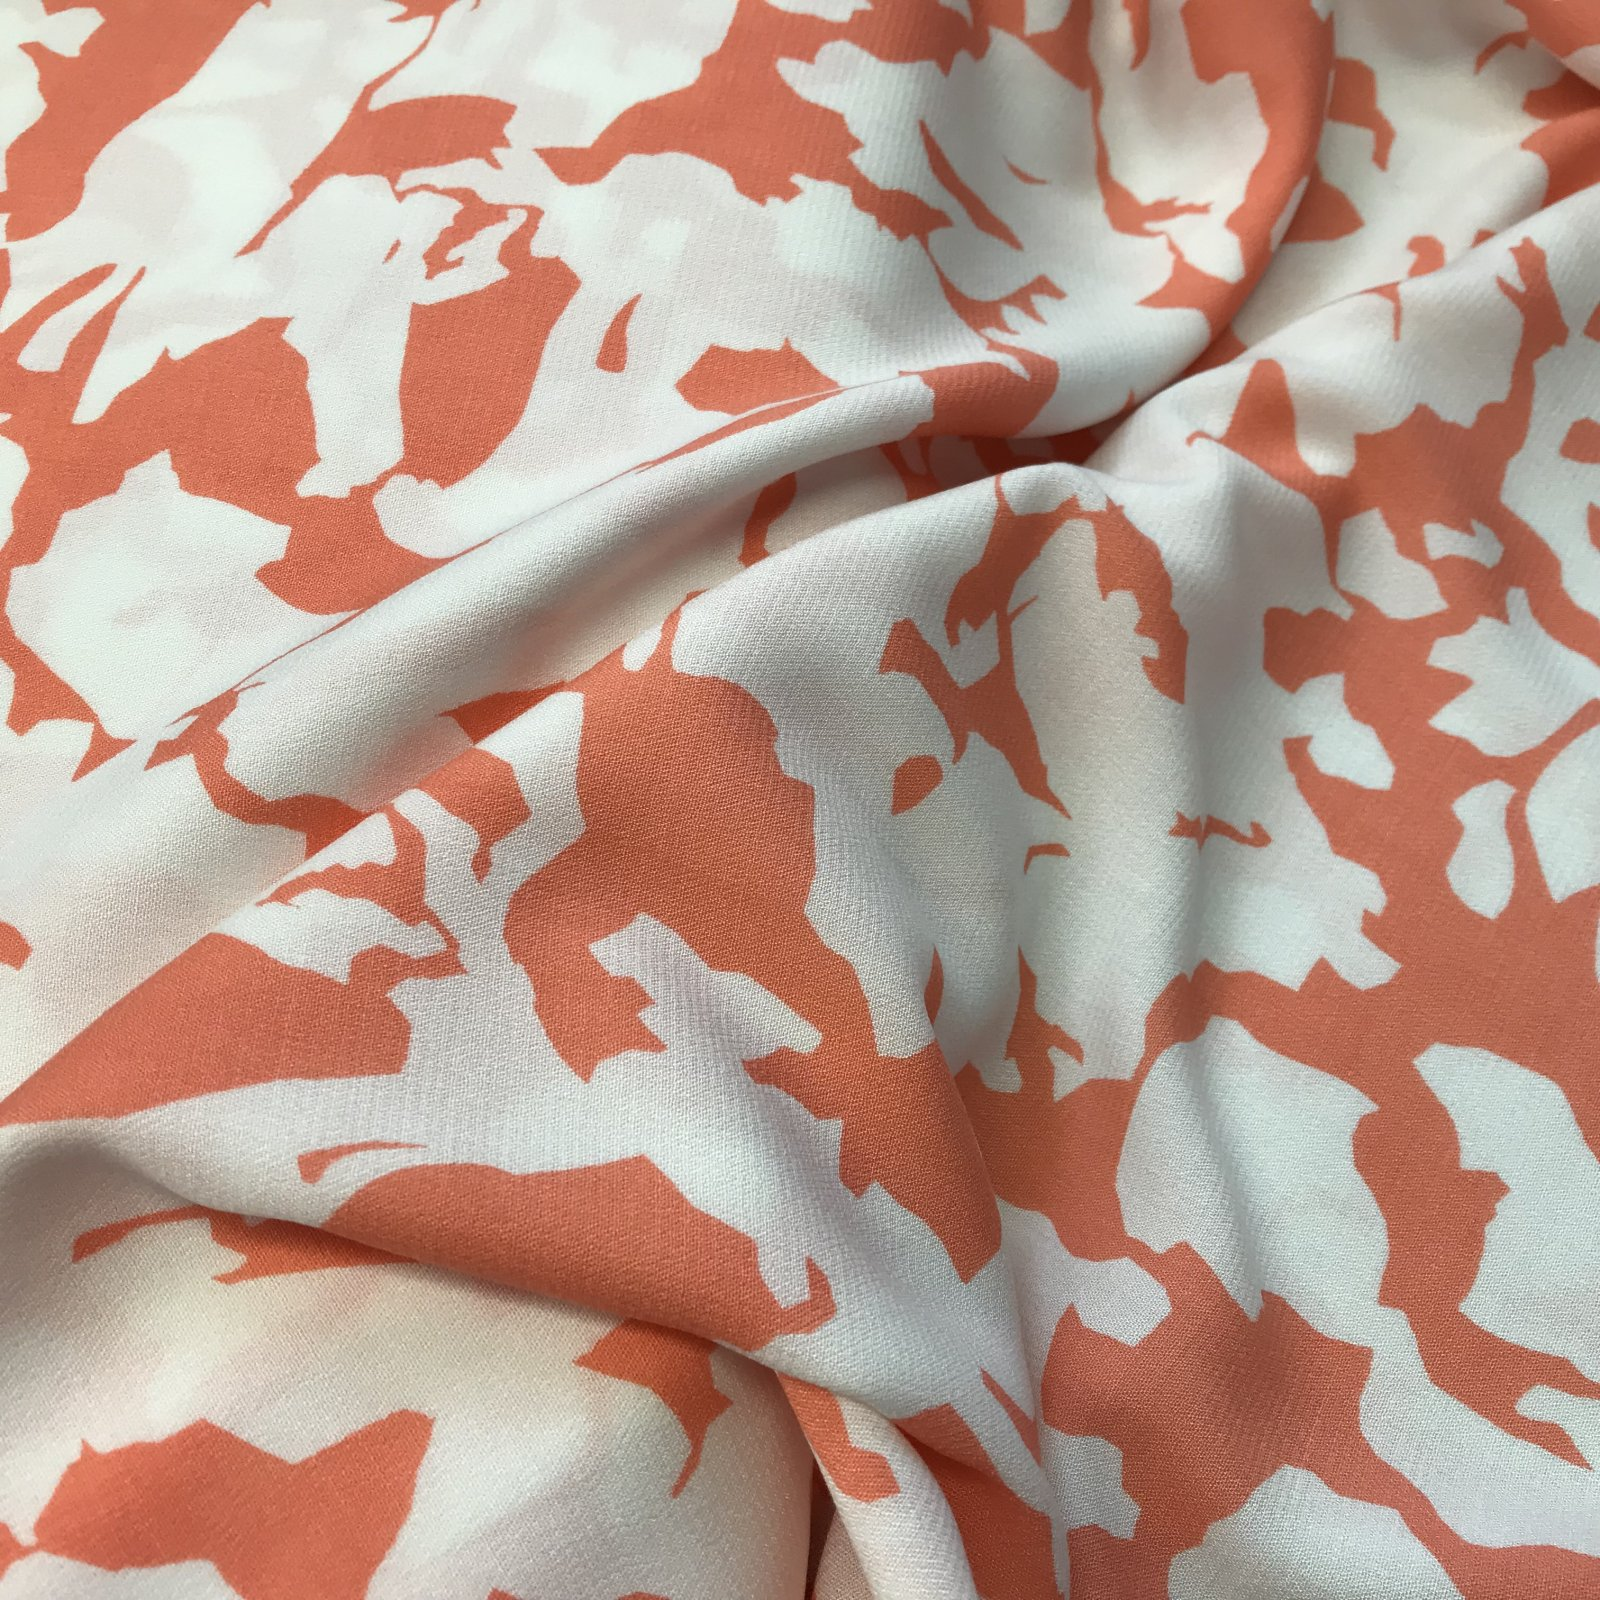 Rayon Crepe - Coral and Ivory